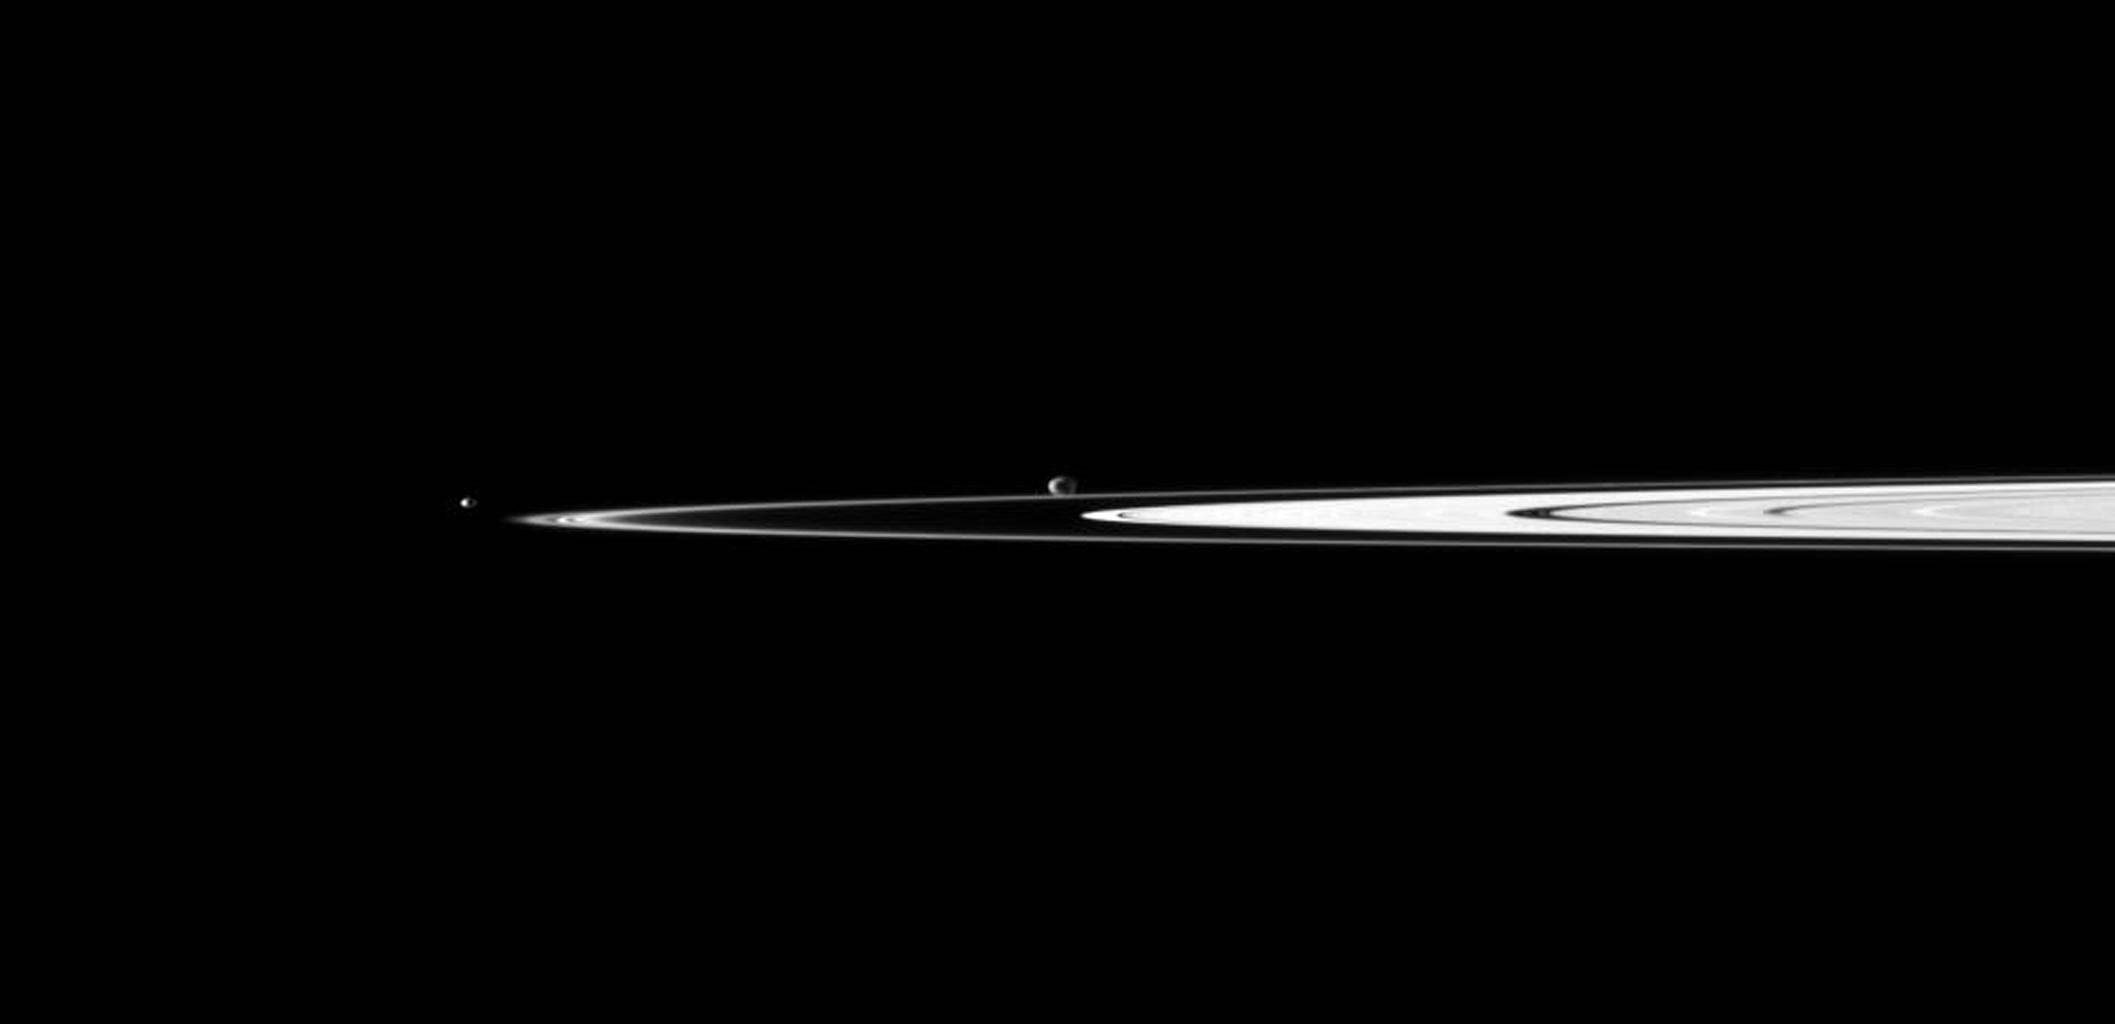 A pair of Saturn's small moons orbit near the planet's rings, which appear well illuminated in this view captured by NASA's Cassini spacecraft. Janus is near the center of the image and Pandora is on the left.